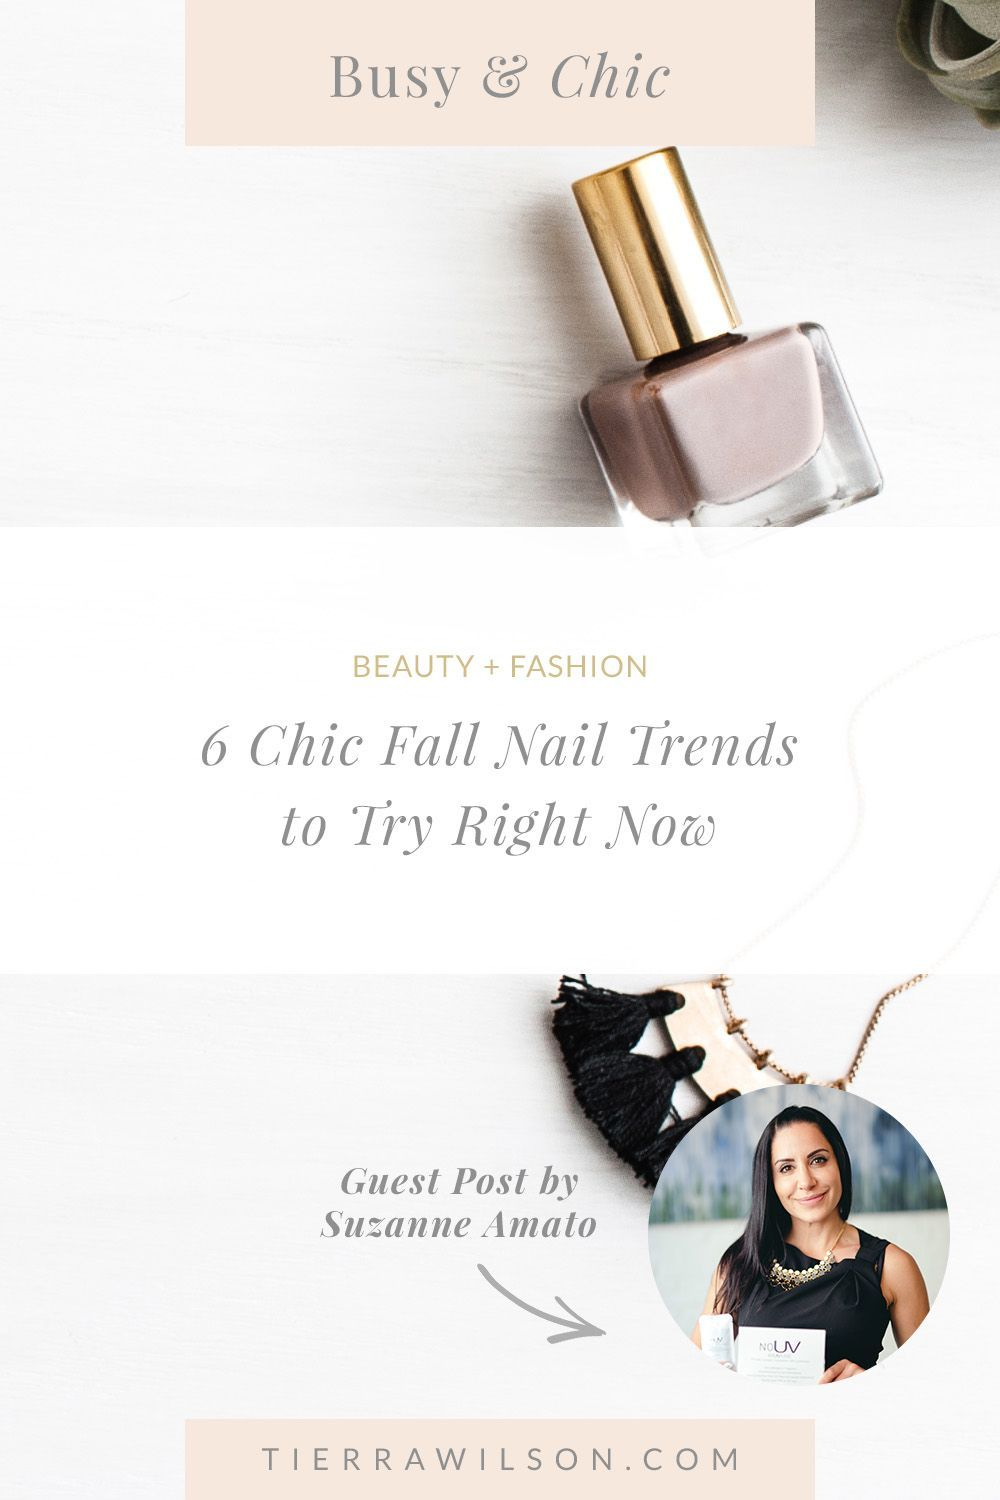 6 Chic Fall Nail Trends to Try Right Now - Tierra Wilson & Co#chic #fall #nail #tierra #trends #wilson